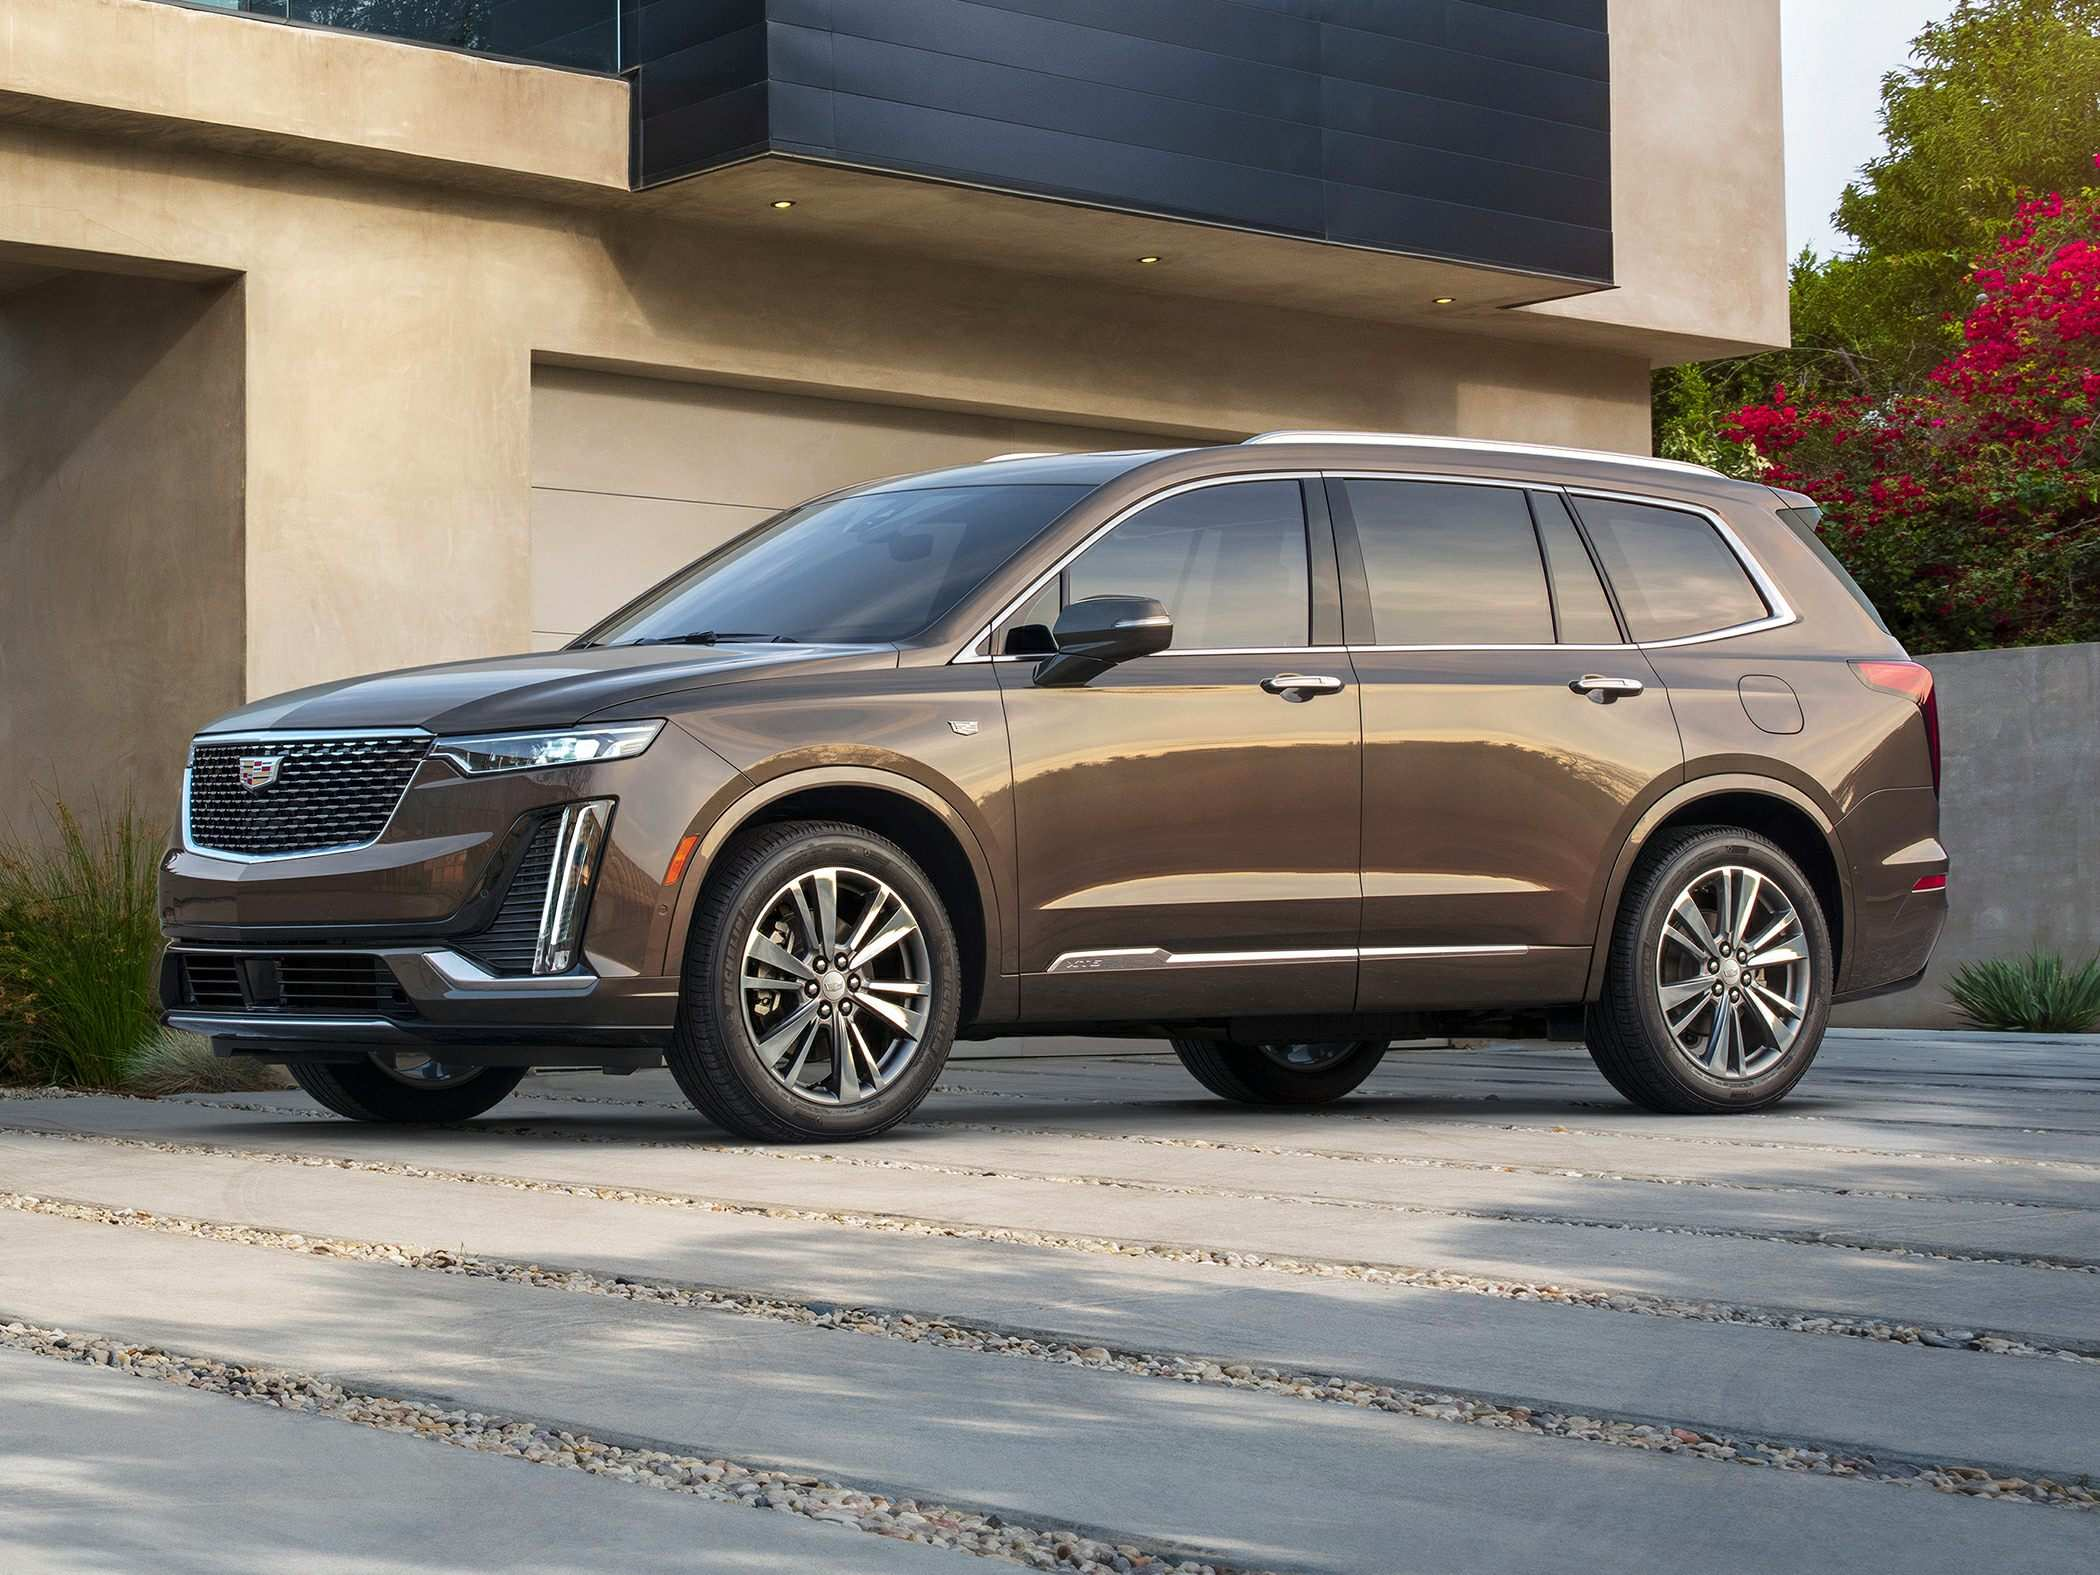 52 Best 2020 Cadillac Build And Price Images